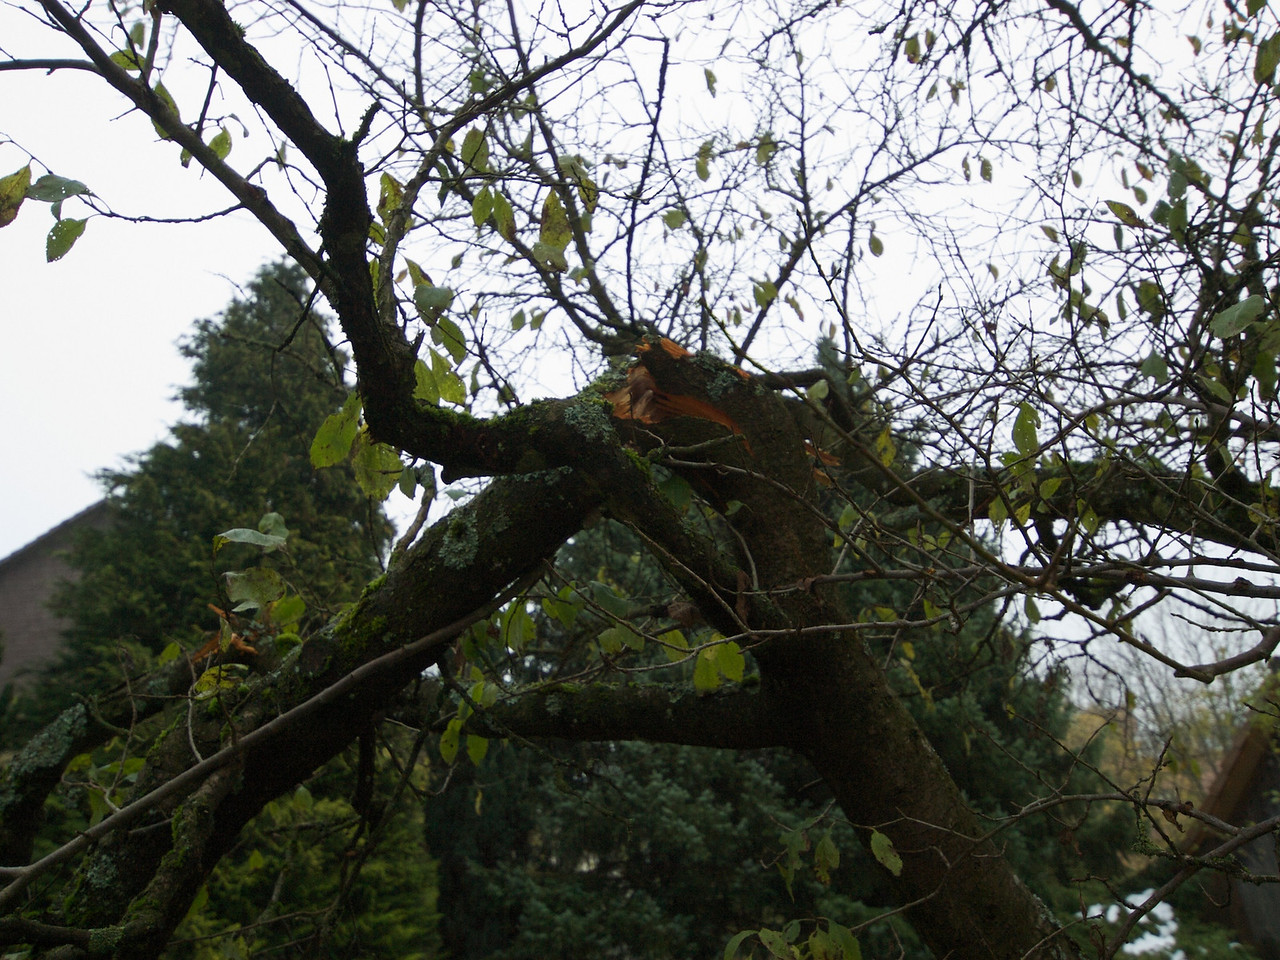 Sunday 2nd Nov 2008 - One of the broken limbs on the plumb tree